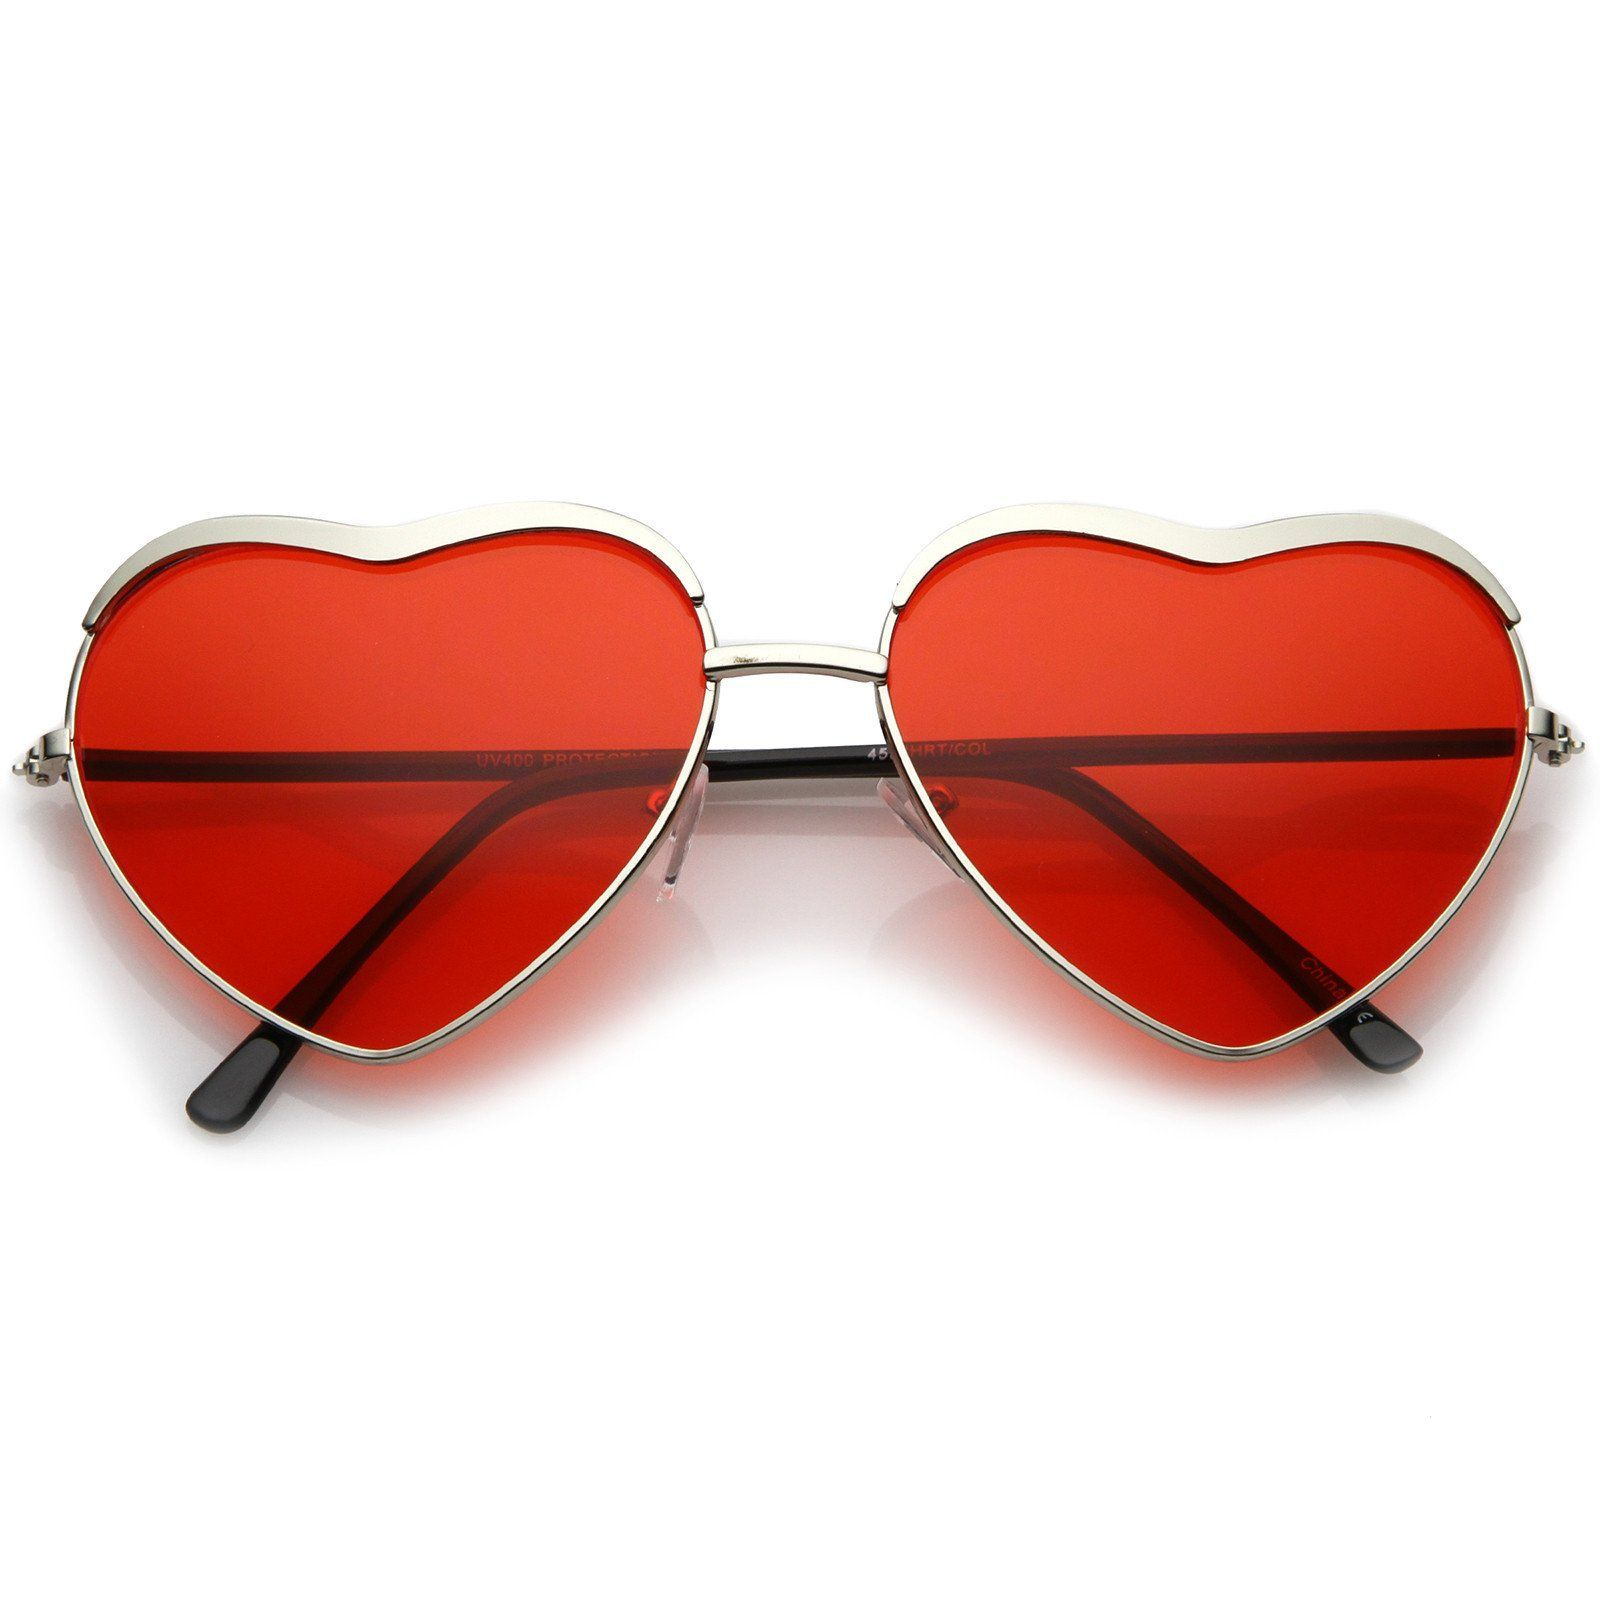 7f218fdfea9 Women s Oversize Metal Frame Slim Arms Tinted Lens Heart Sunglasses 61mm